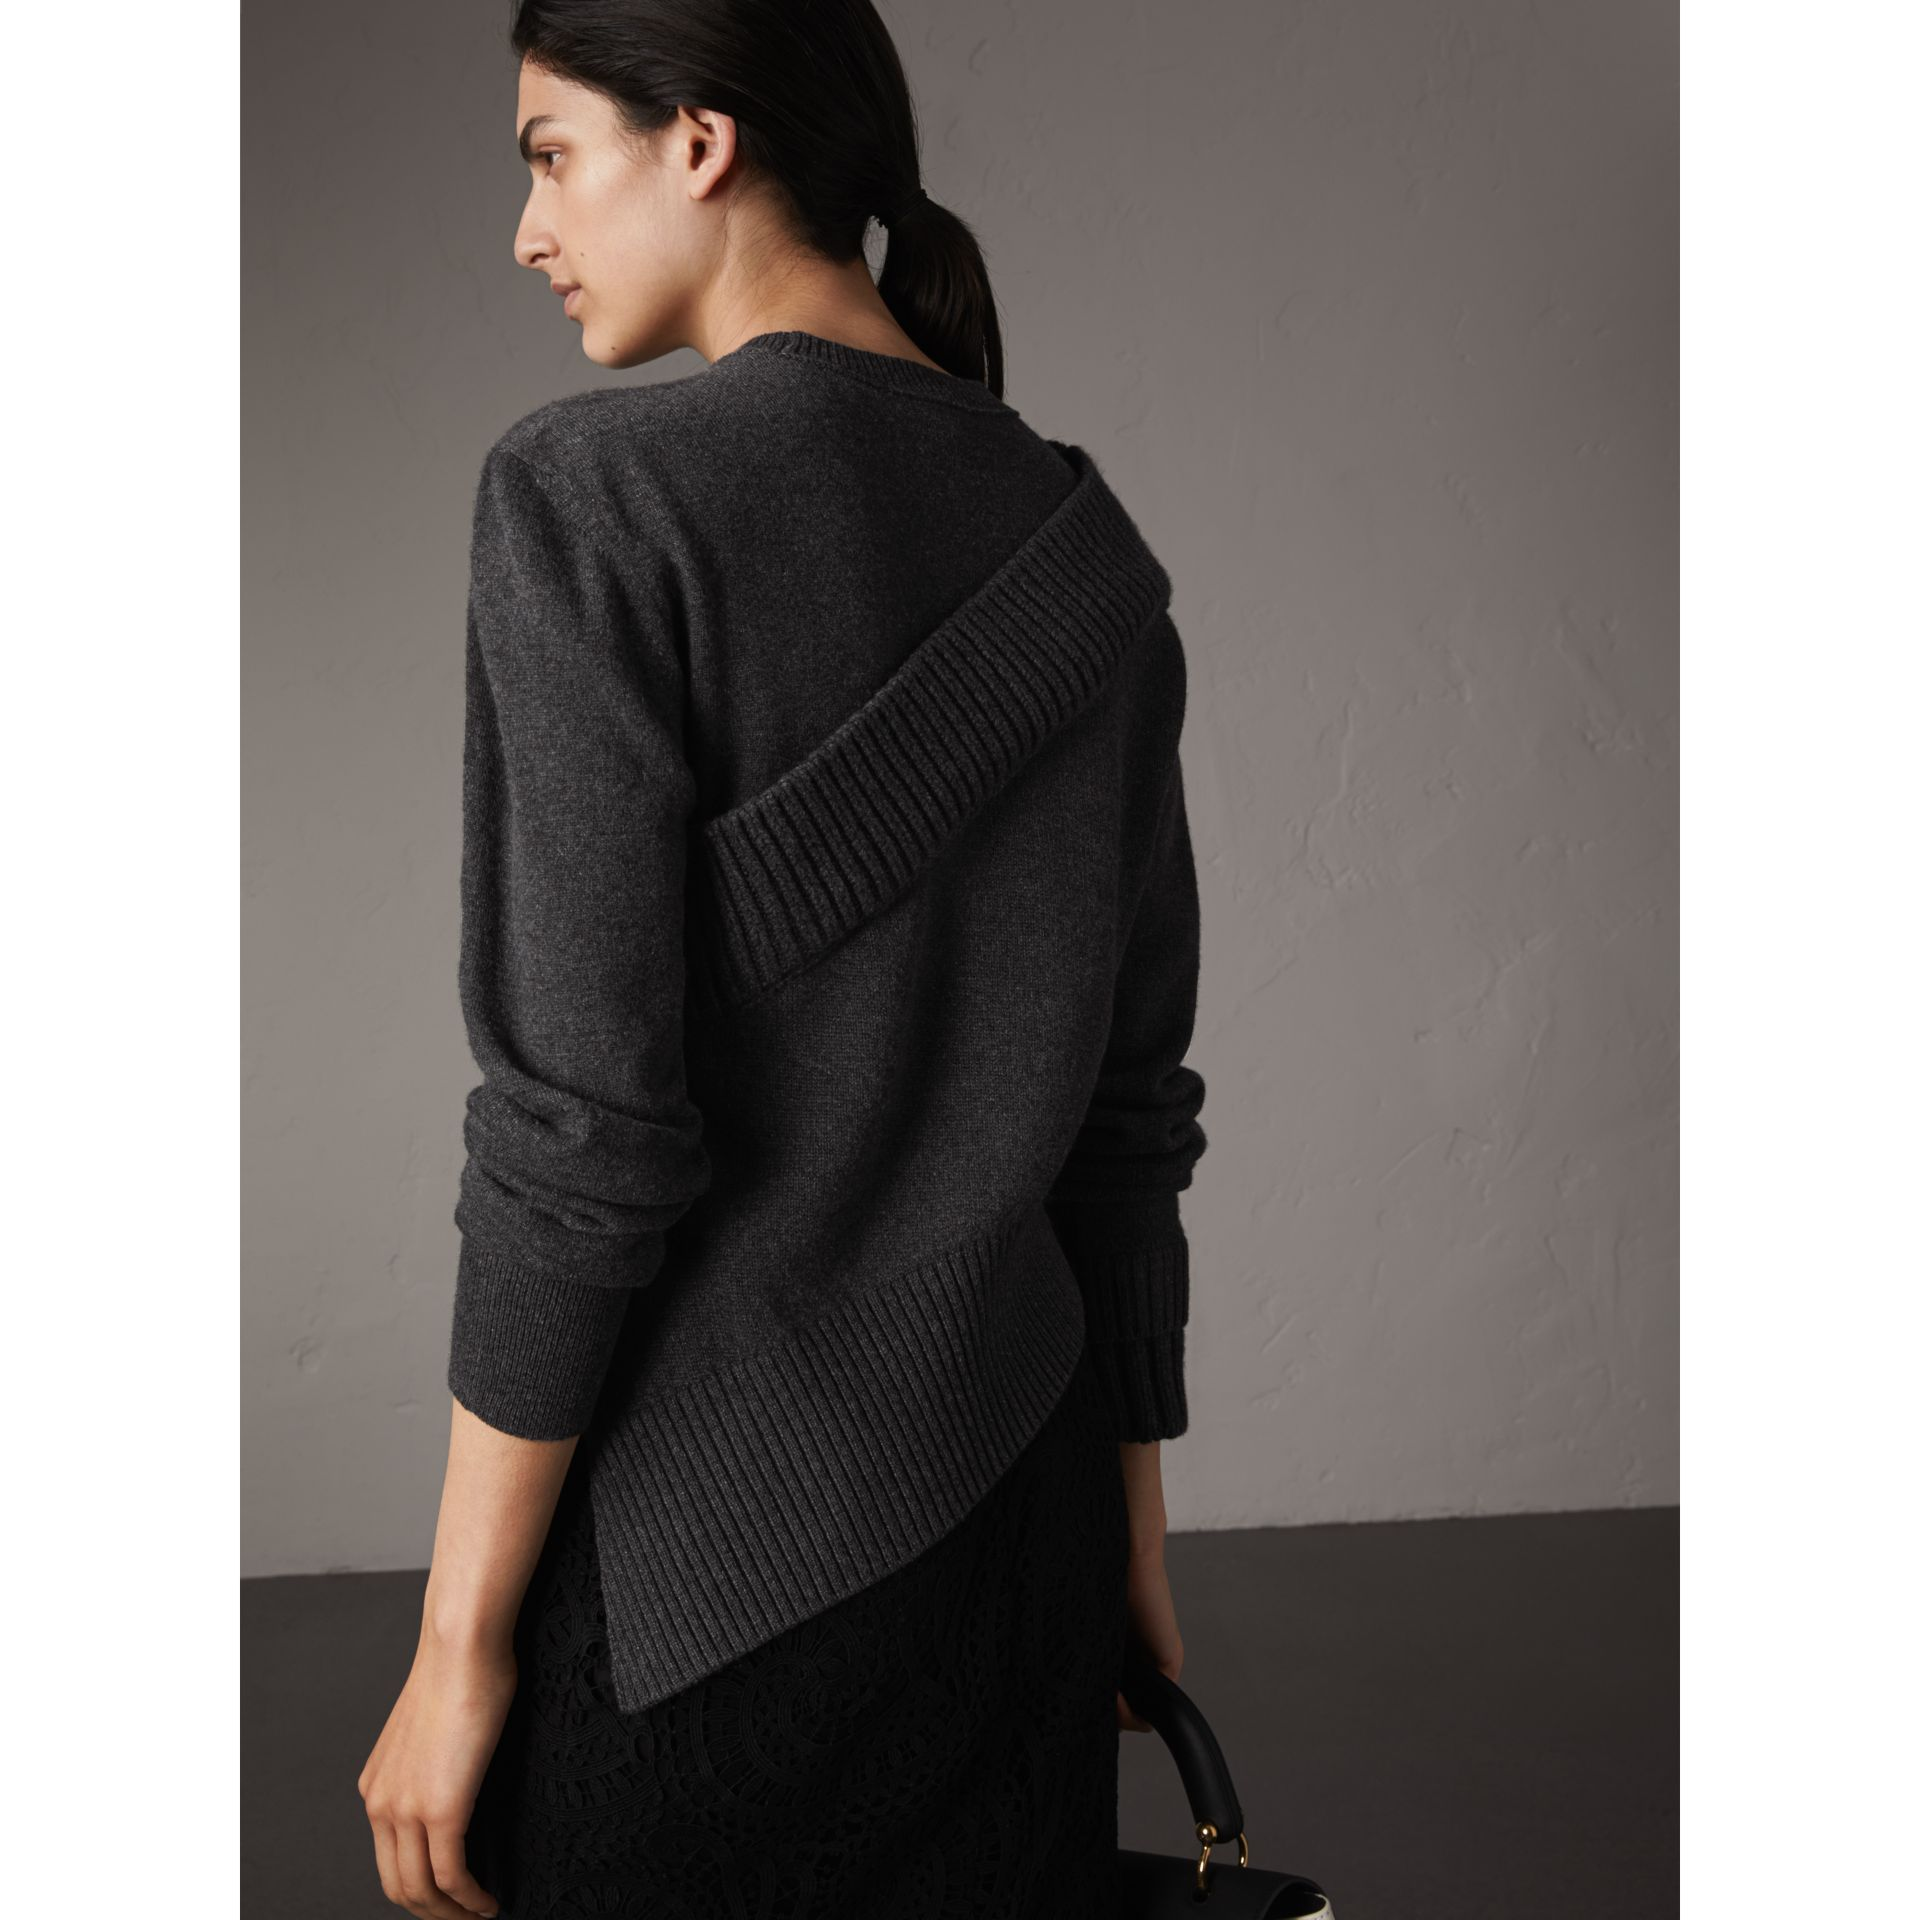 Rib Knit Detail Cashmere Asymmetric Sweater in Charcoal - Women | Burberry - gallery image 3